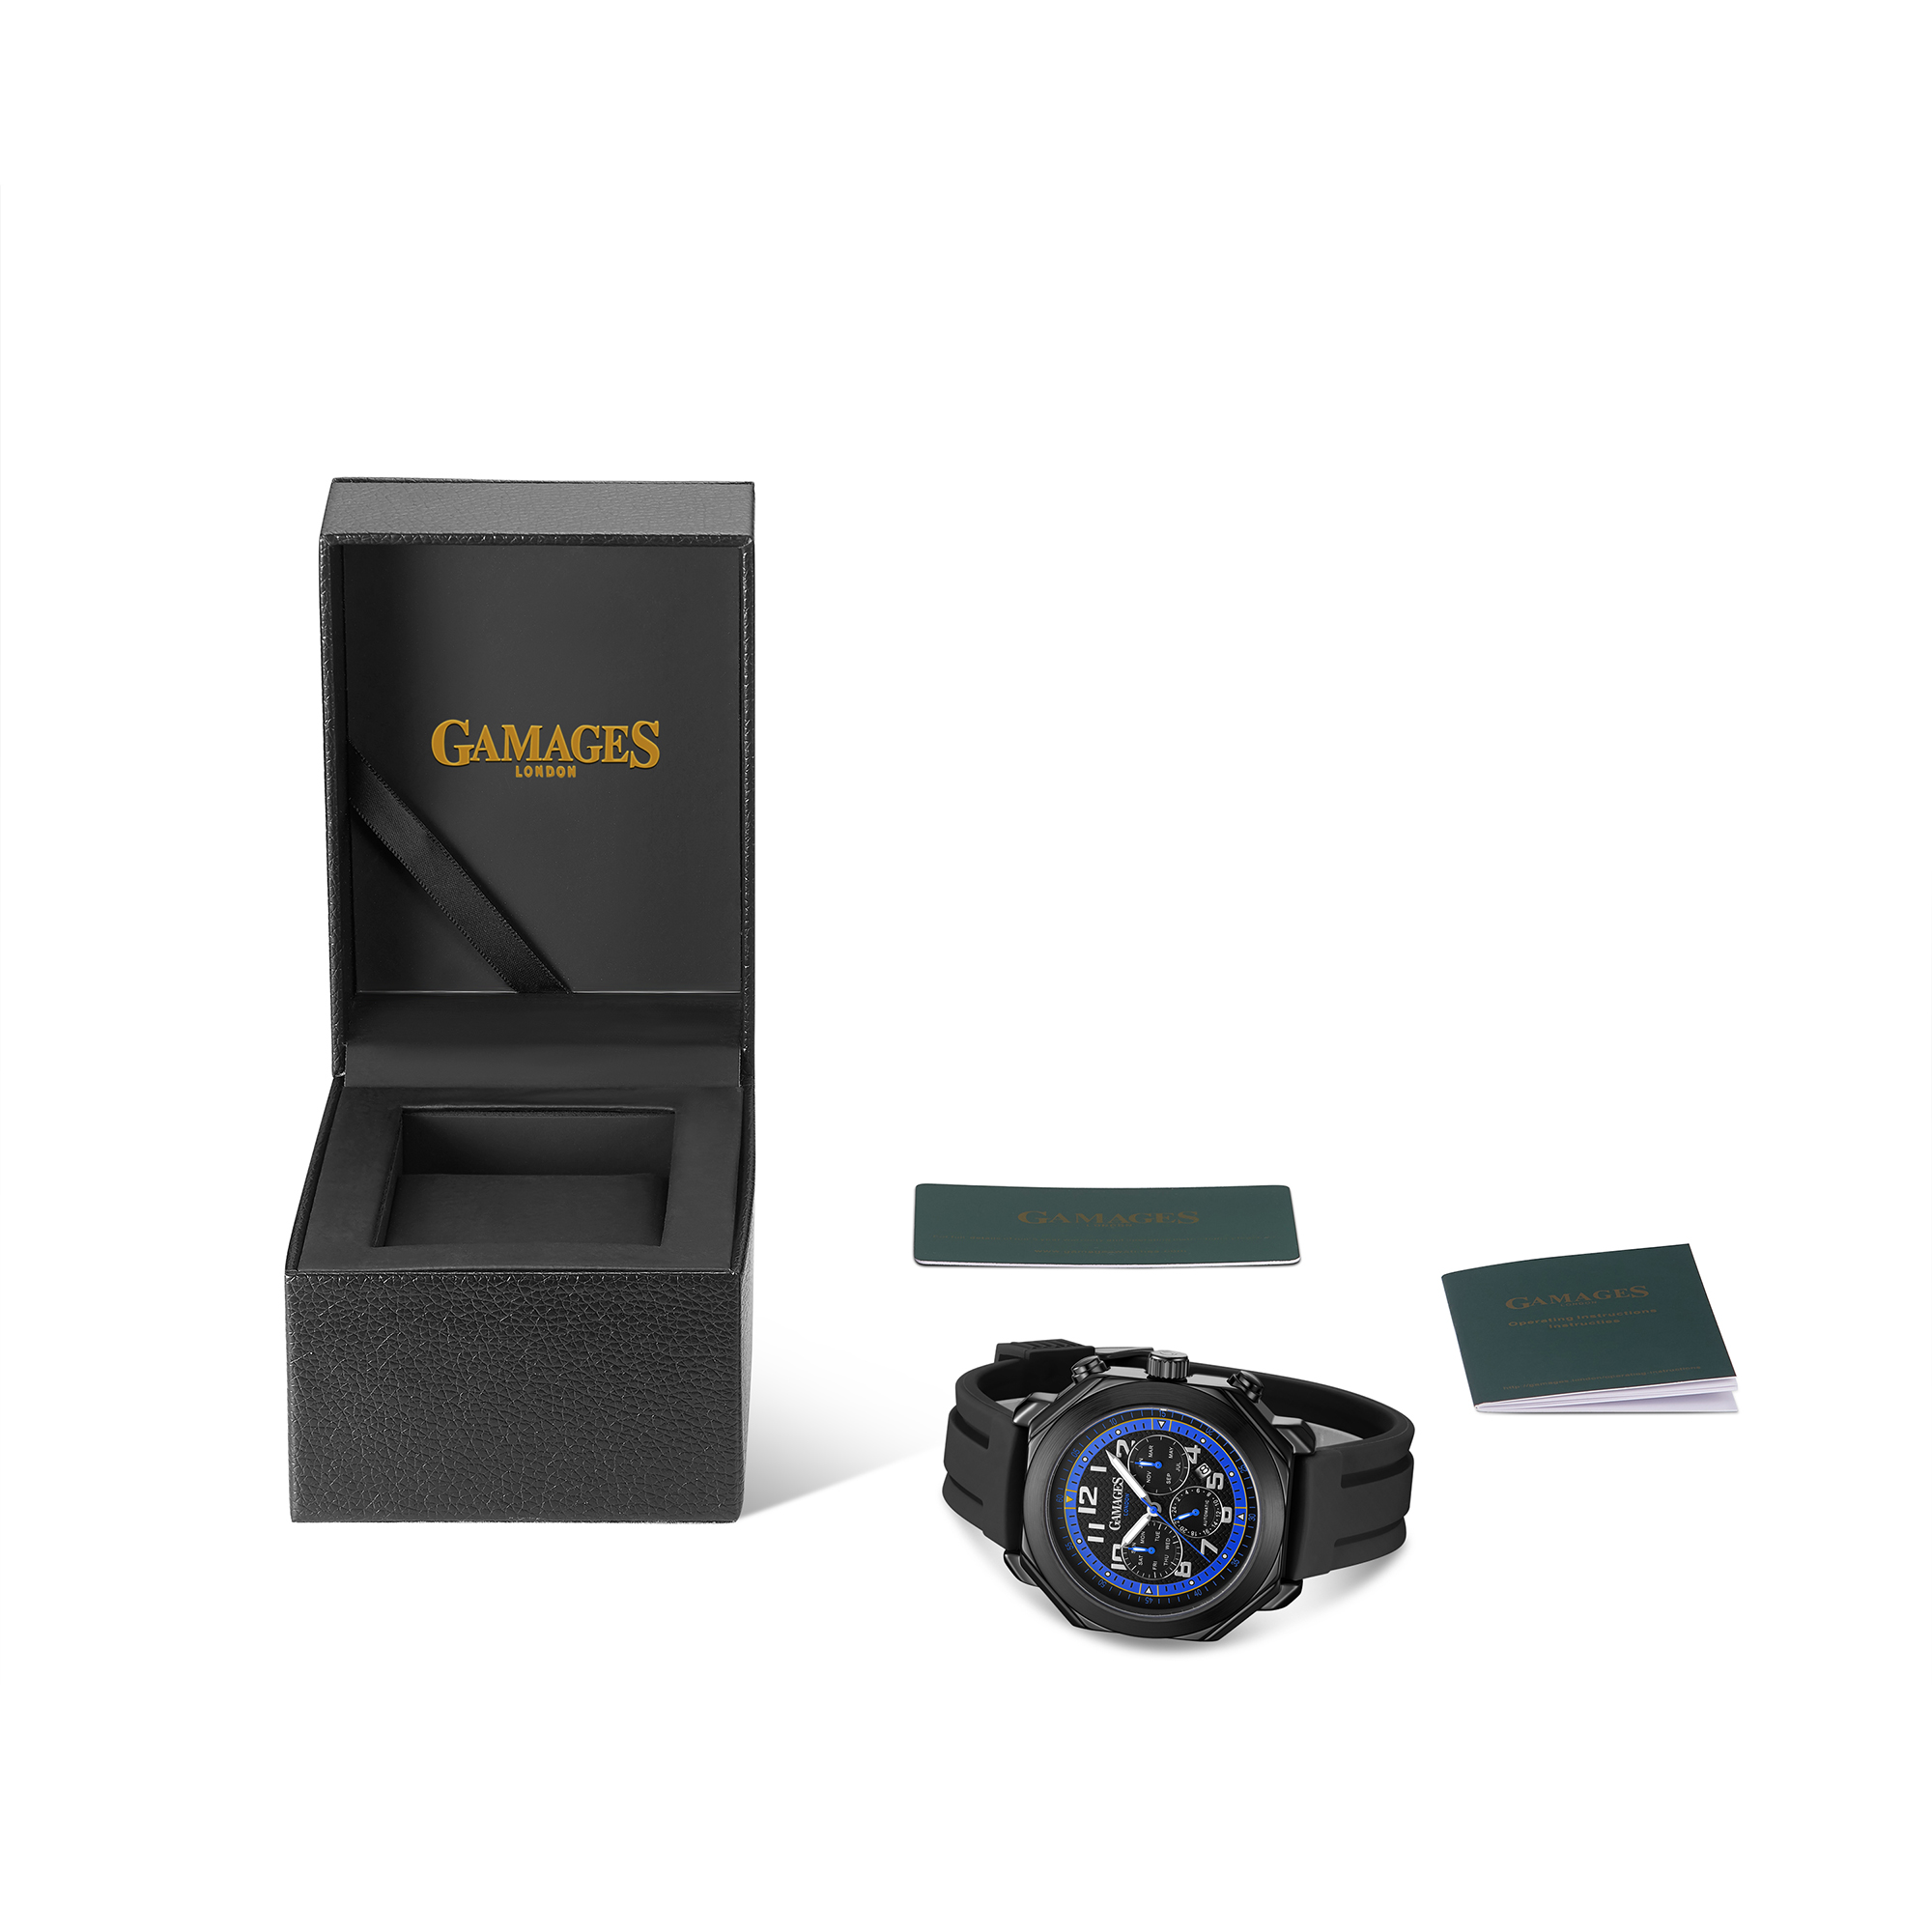 Limited Edition Hand Assembled Gamages Contemporary Automatic Blue – 5 Year Warranty & Free Delivery - Image 2 of 4